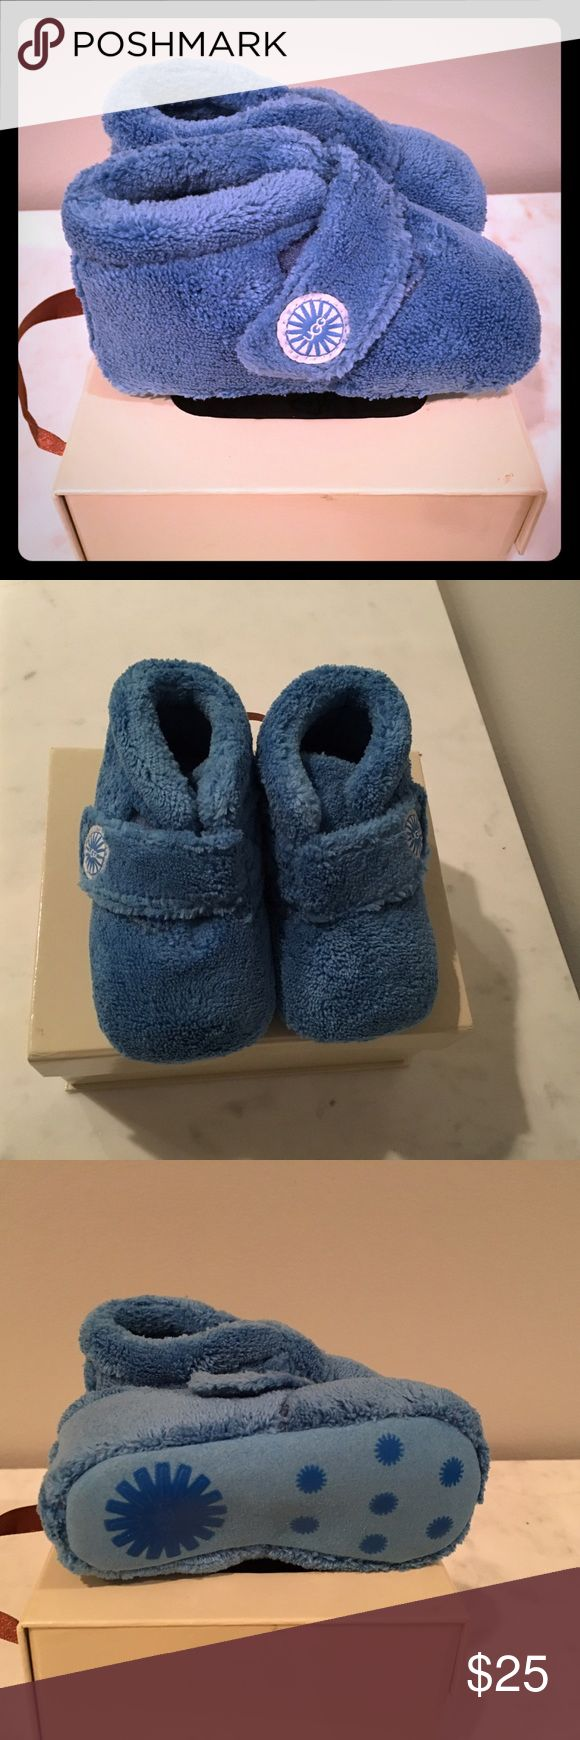 "NWT UGG Bixbee Booties in Blue Adorable booties in ""sky"" blue in size 4/5 medium which fits 12-18 months. Brand new, never worn. Perfect condition. Comes in original box. Purchased at the UGG store. UGG Shoes Baby & Walker"